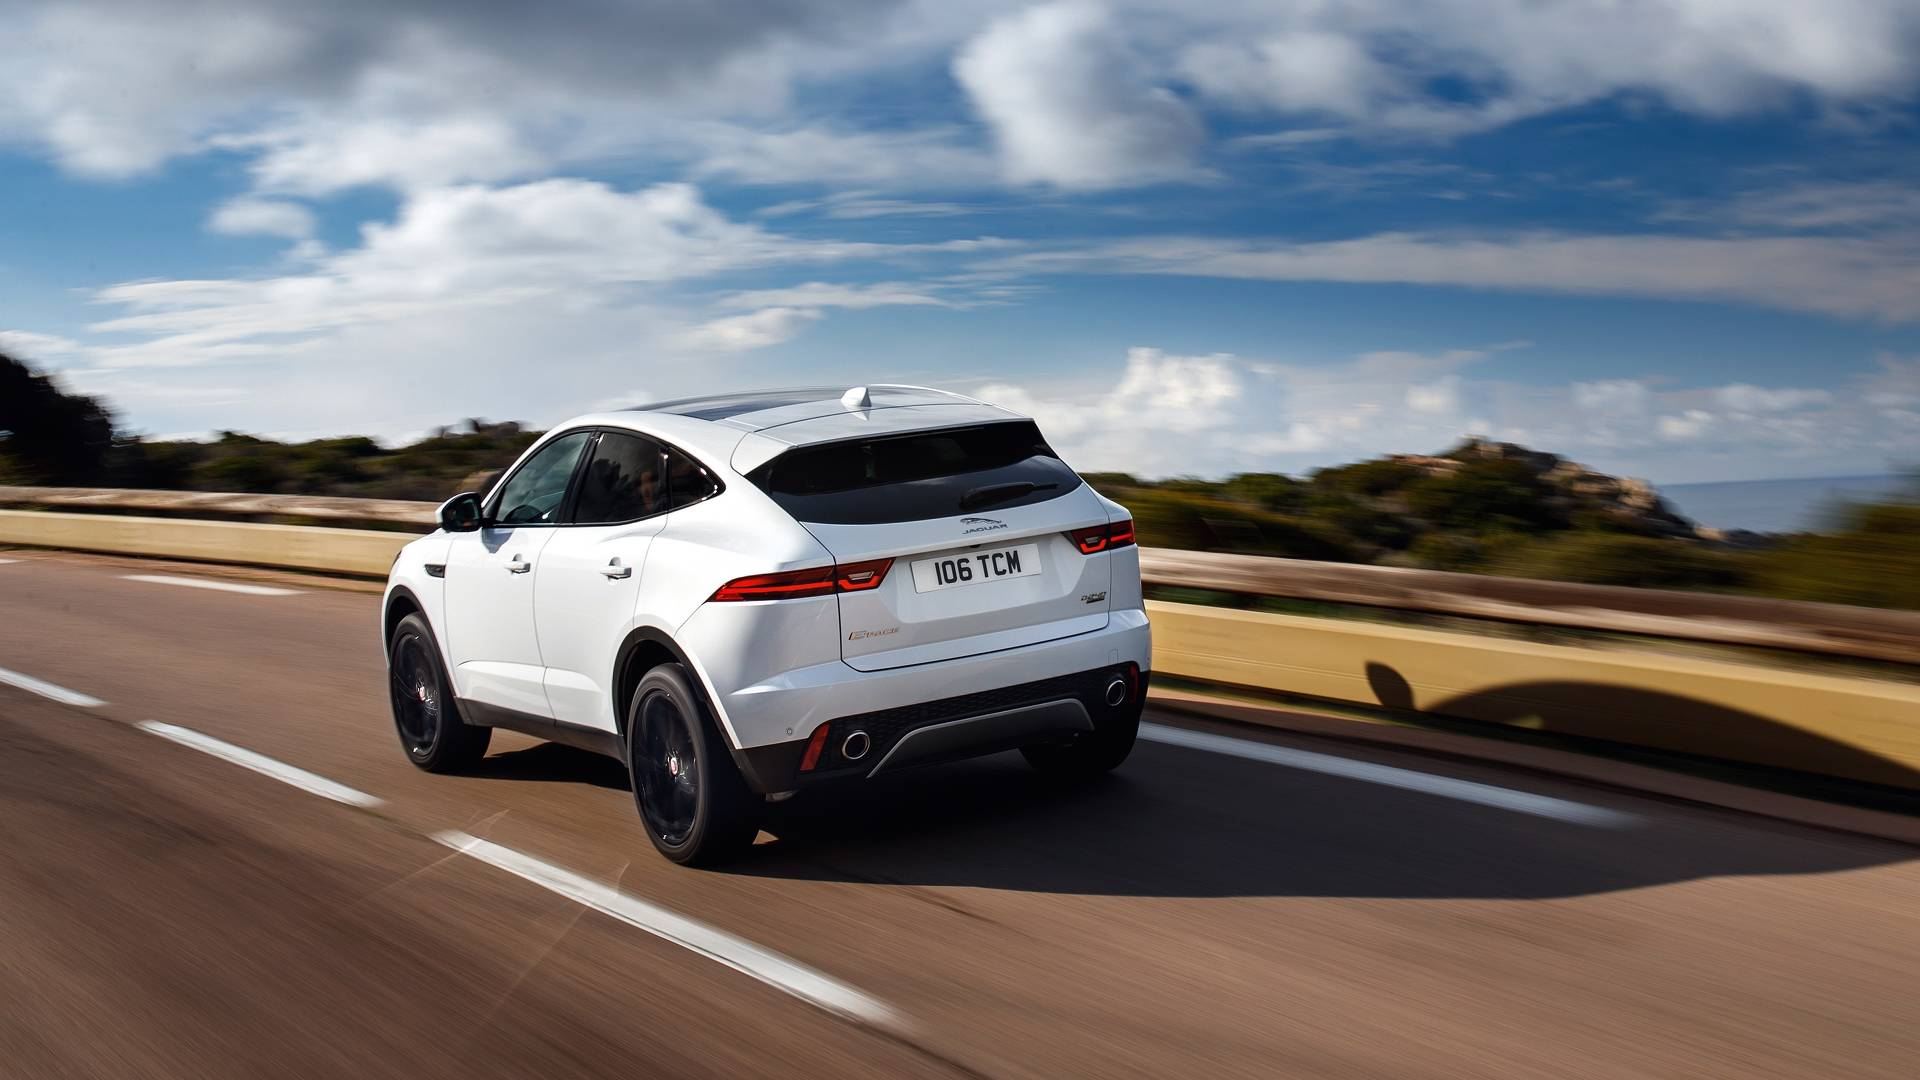 2018 Jaguar E-Pace S 240D AWD first drive: Lacking pace and